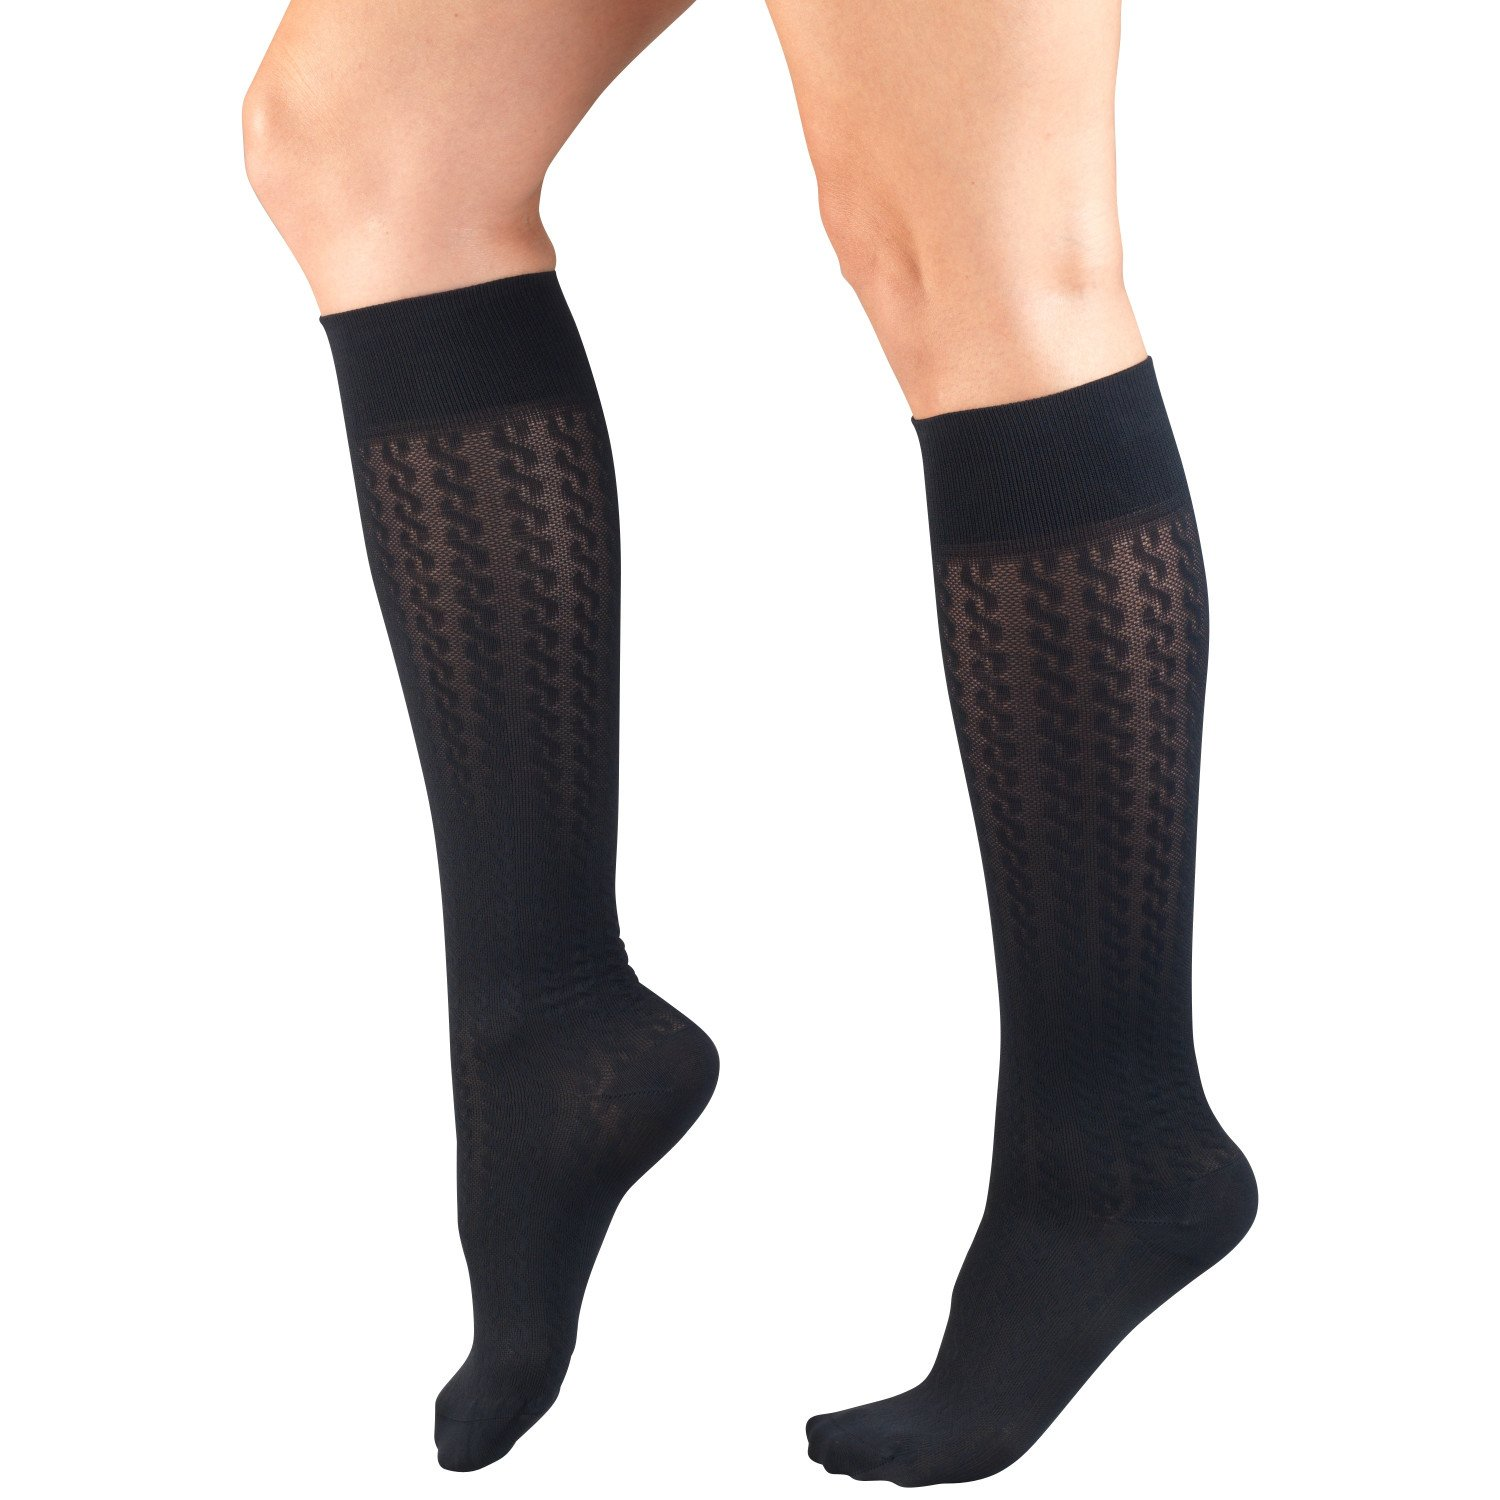 Amazon.com: Truform Compression Socks for Women, 15-20 mmHg, Navy Cable Pattern, X-Large: Health & Personal Care